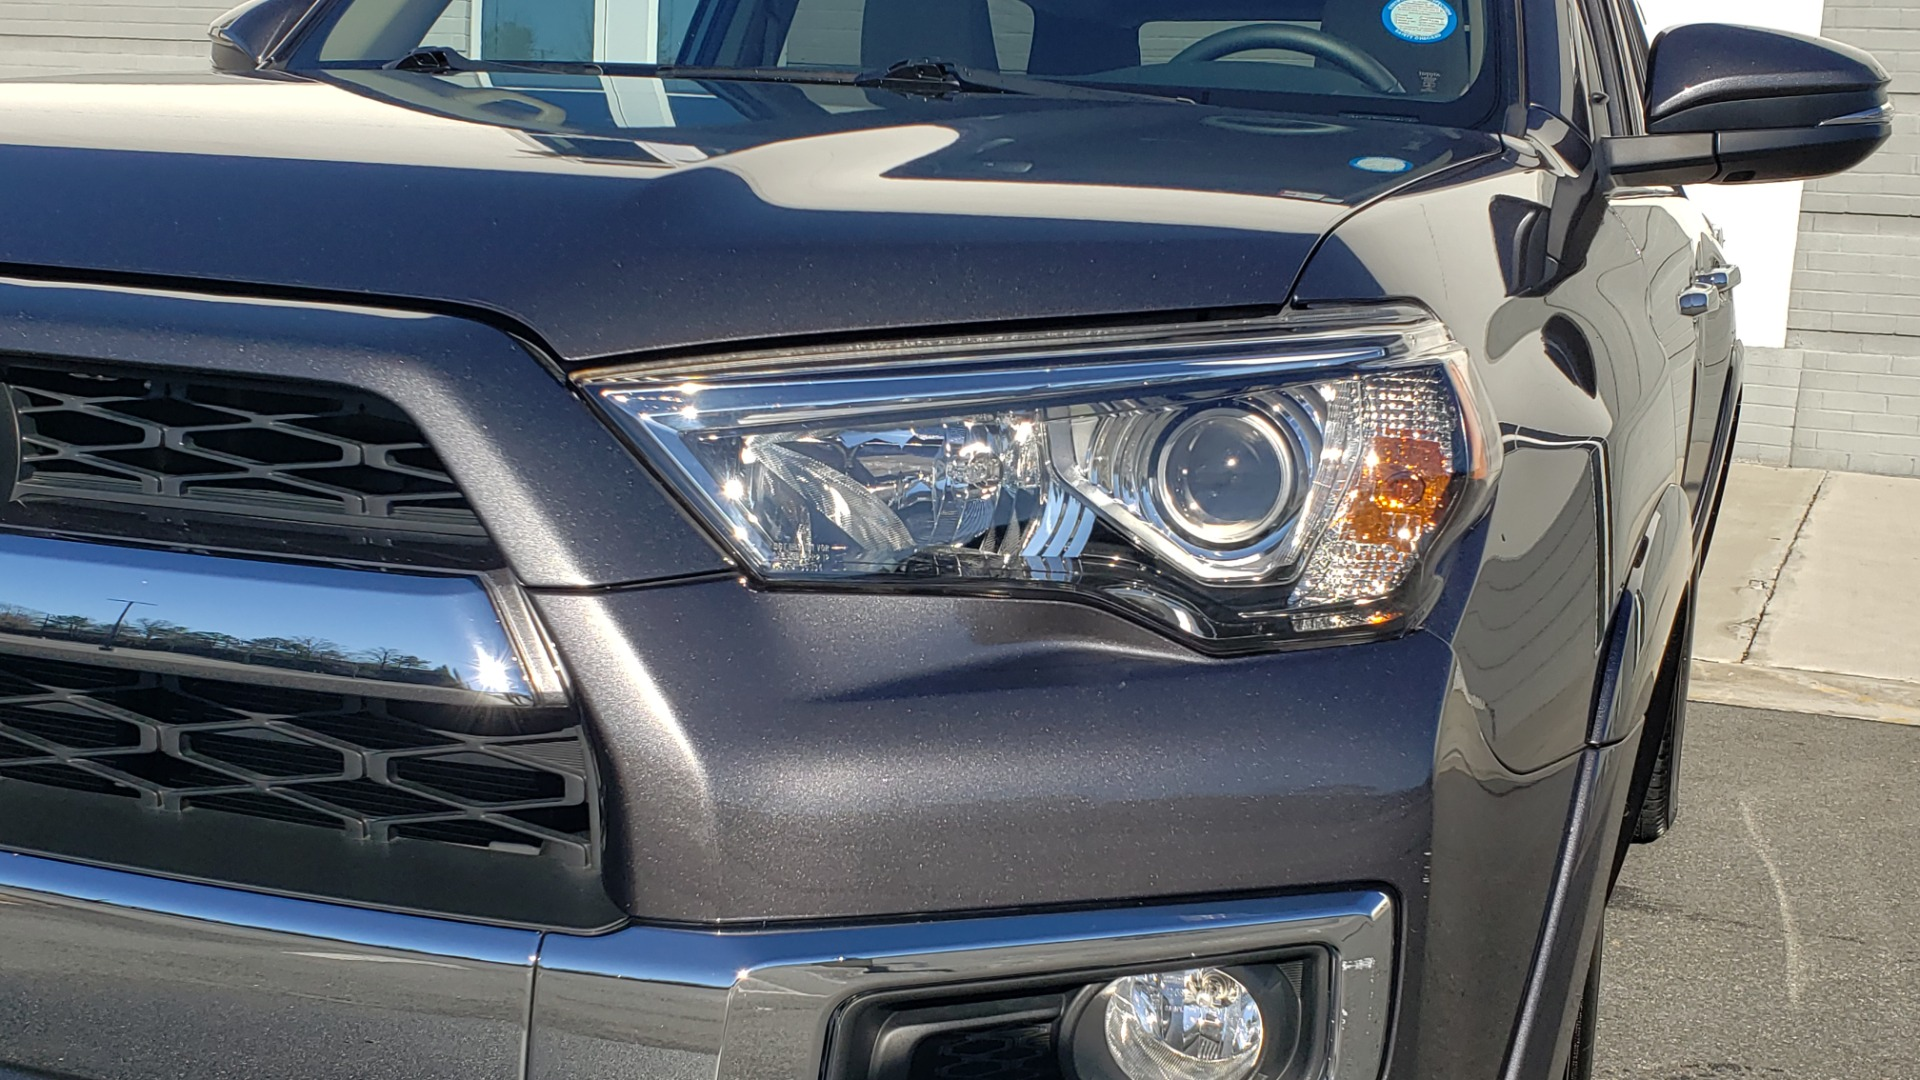 Used 2018 Toyota 4RUNNER LIMITED 4X4 / 4.0 V6 / AUTO / NAV / SUNROOF / REARVIEW for sale Sold at Formula Imports in Charlotte NC 28227 27